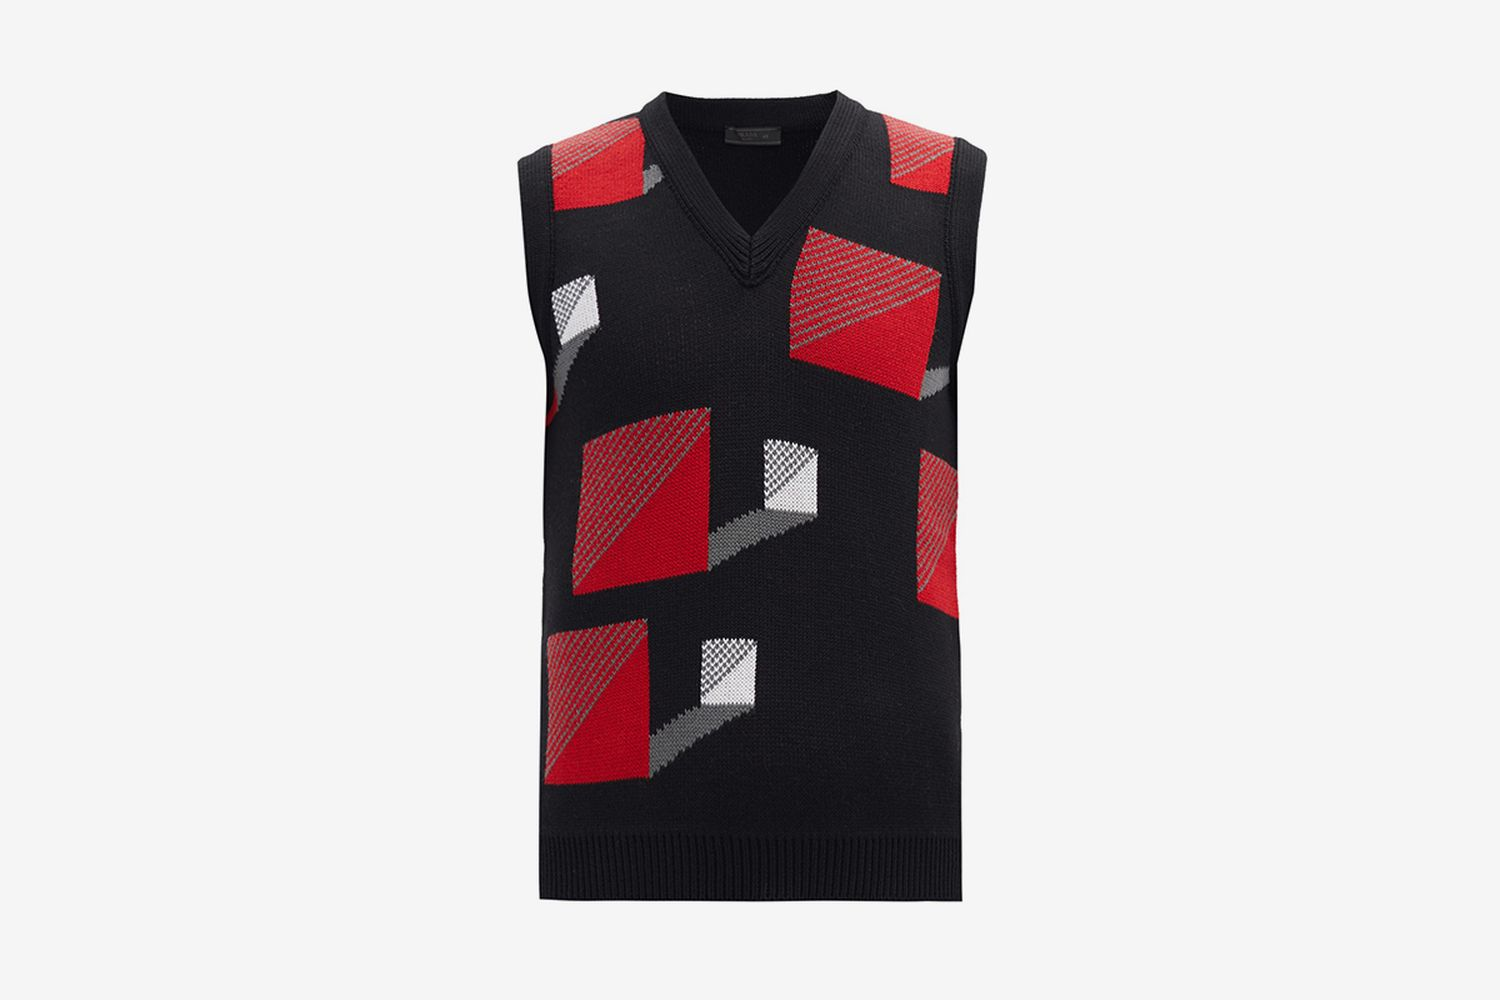 Square-Jacquard Wool Sleeveless Sweater